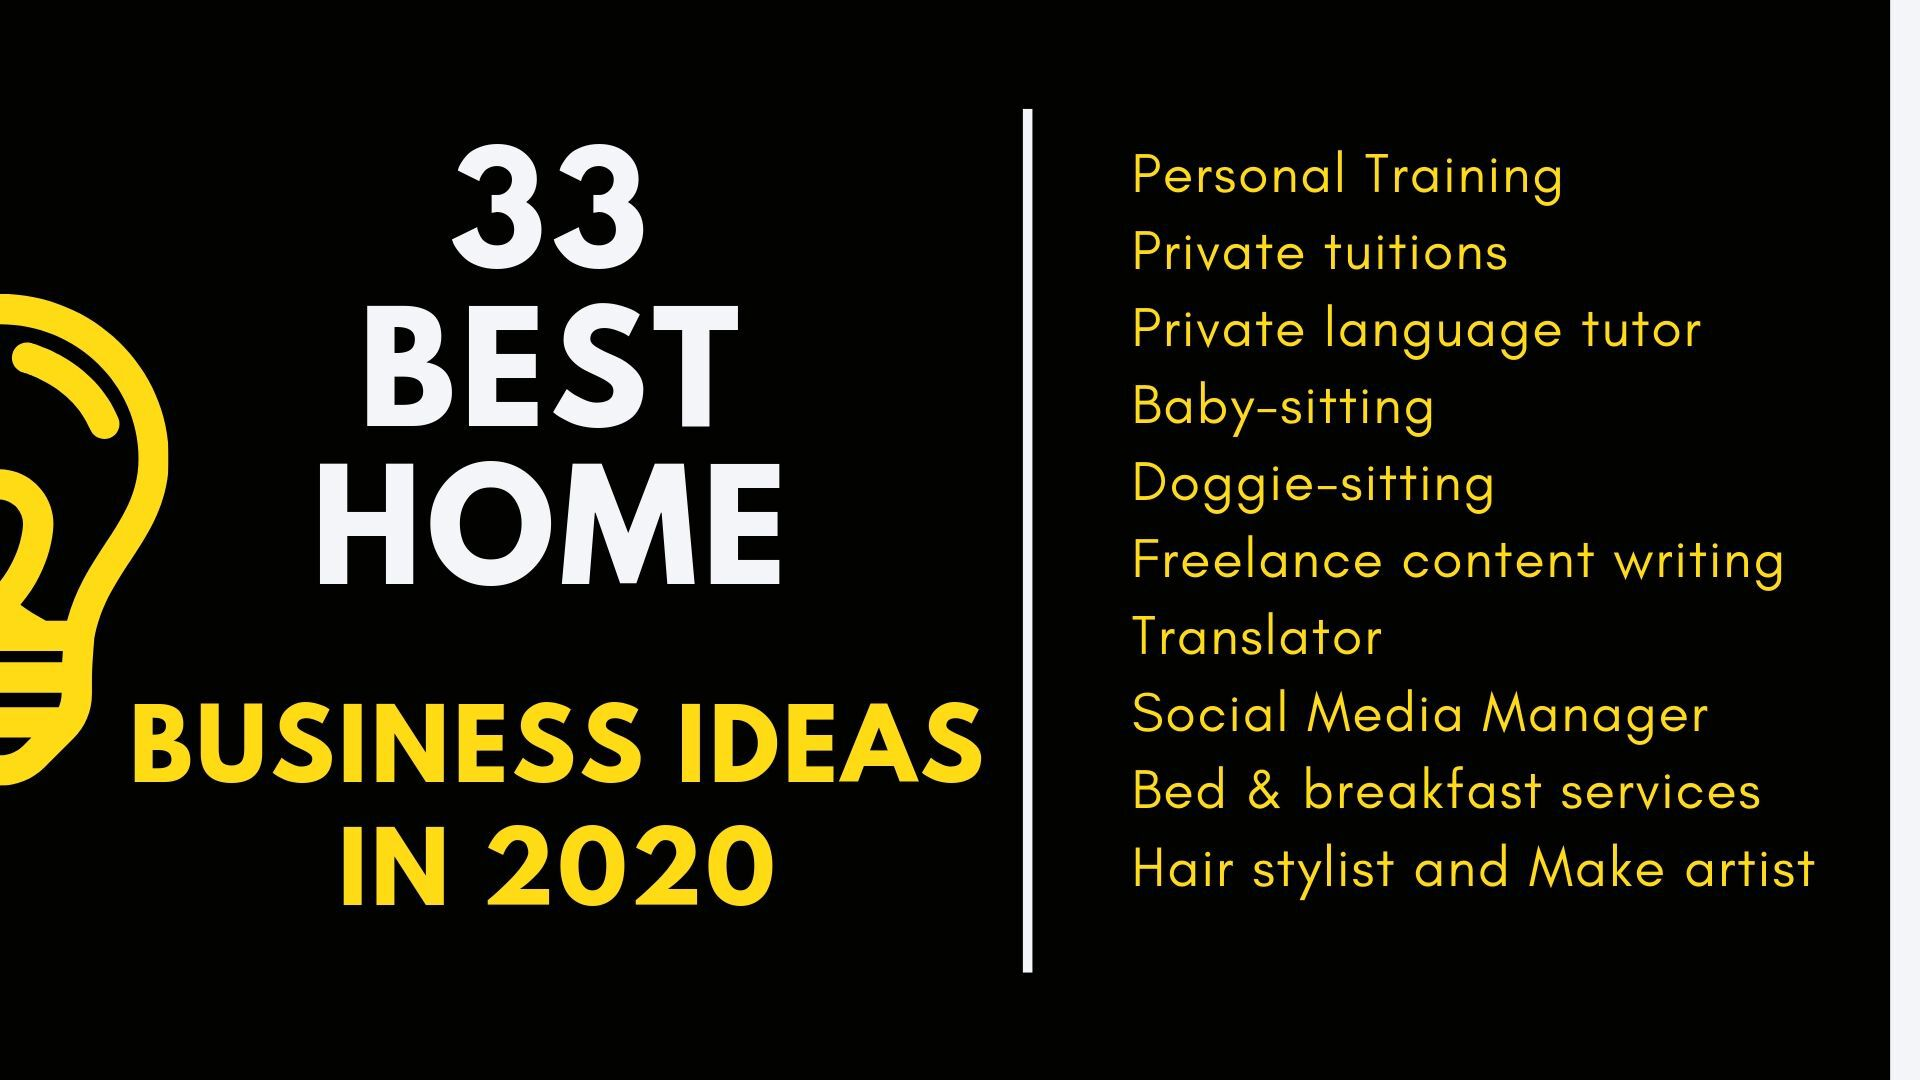 Best home Business Ideas in 2020